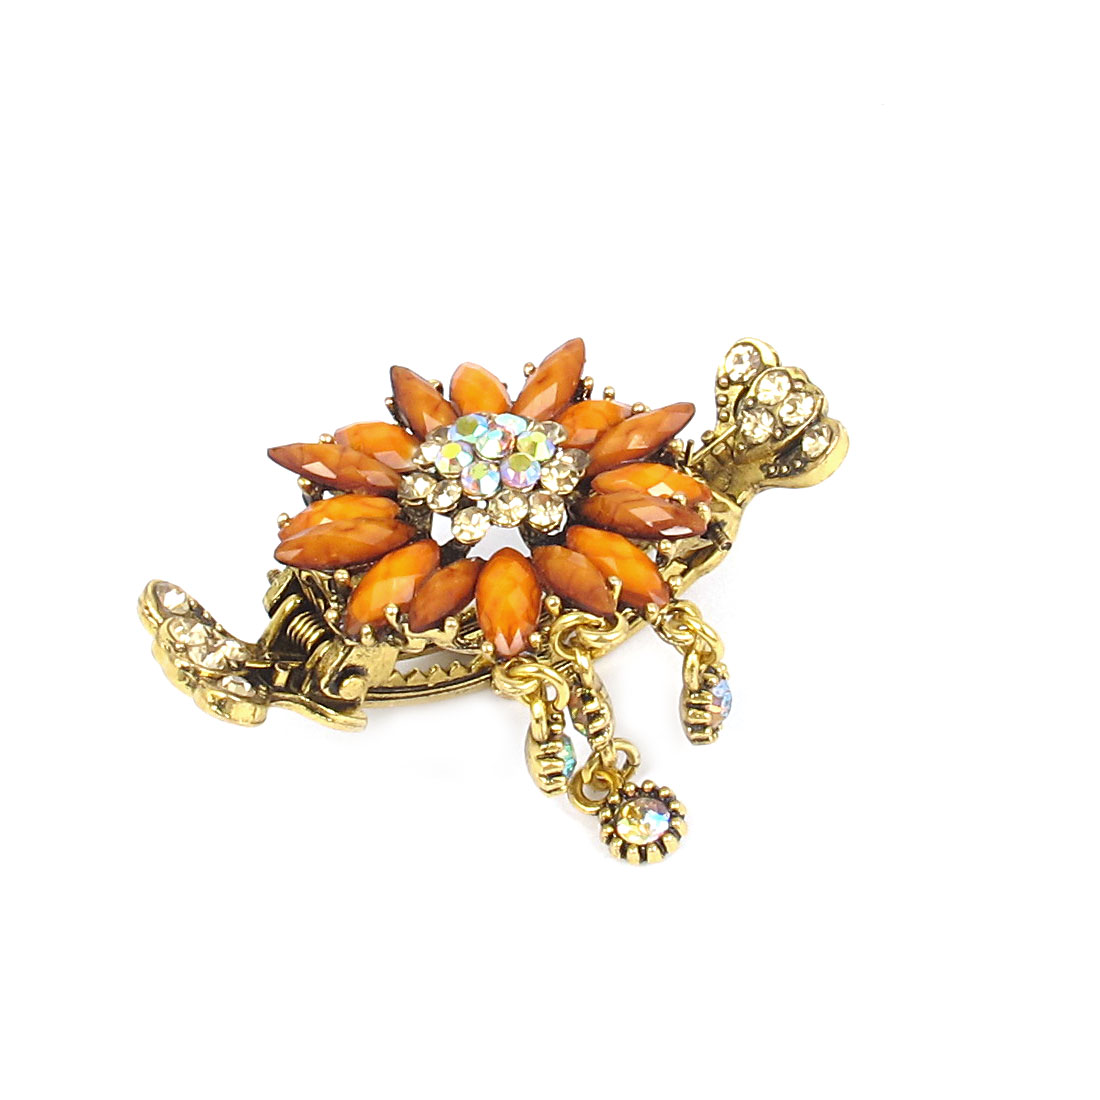 Lady Bohemia Style Rhinestone Inlaid Yellow Flower Brass Tone Metal Crab Hair Claw Hairclip Jaw Hairpin